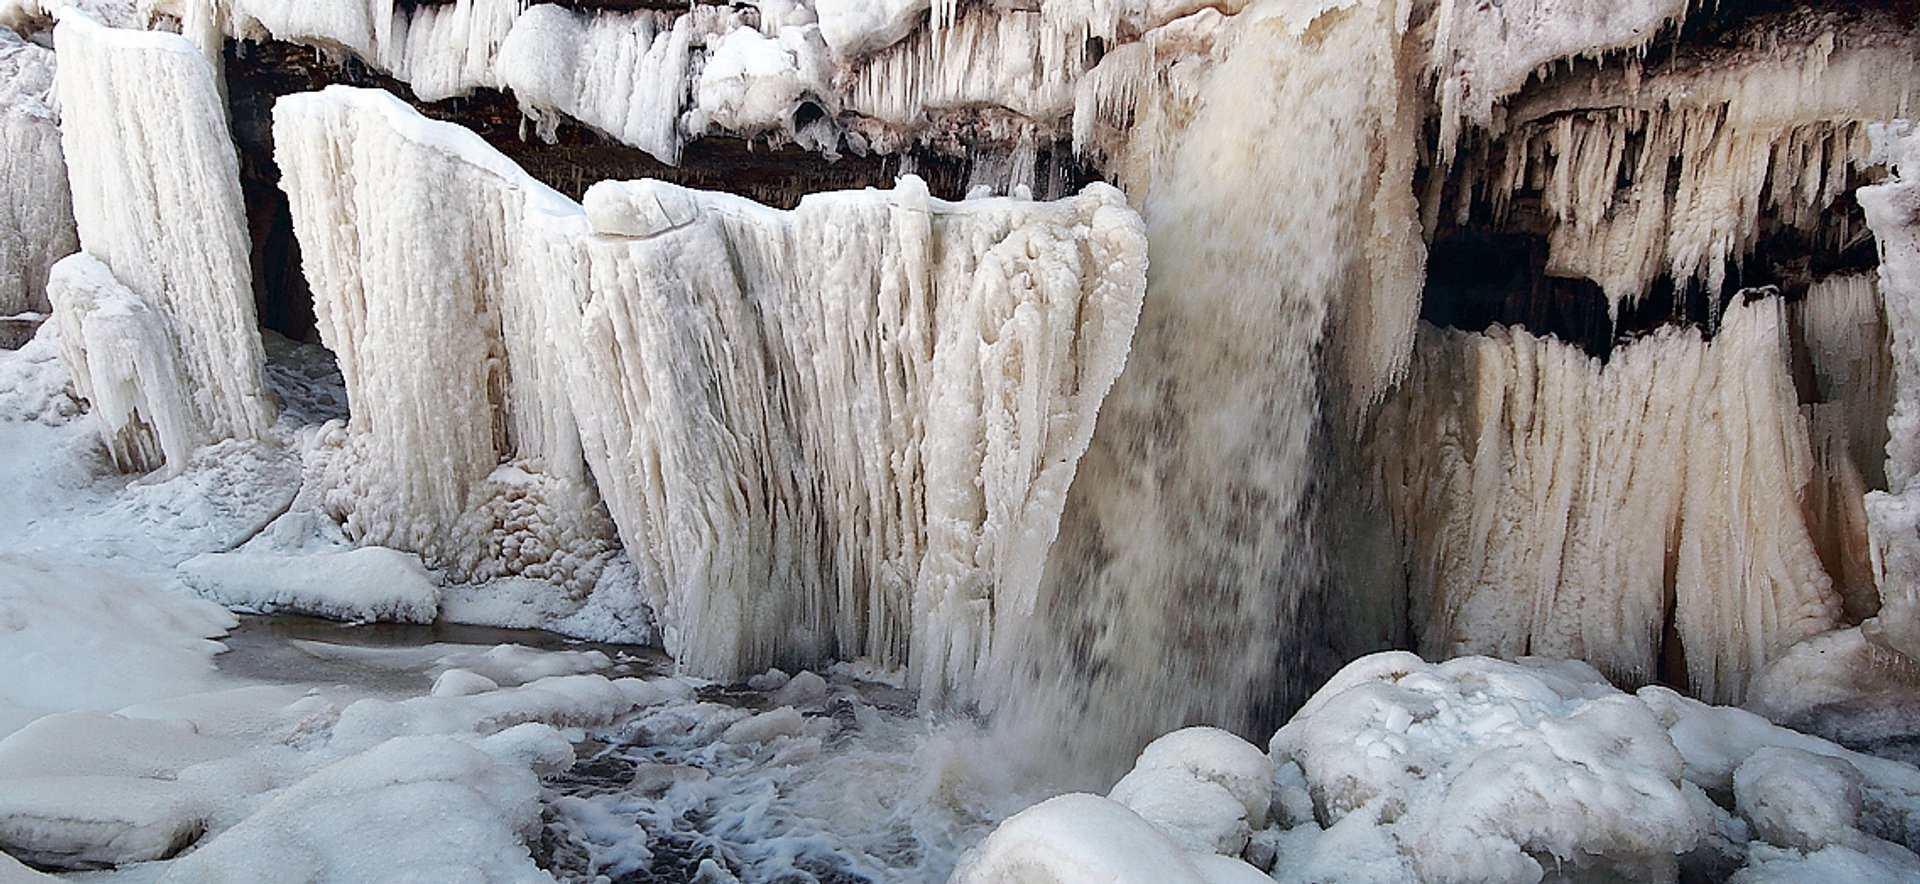 Best time to see Frozen Waterfalls in Estonia 2020